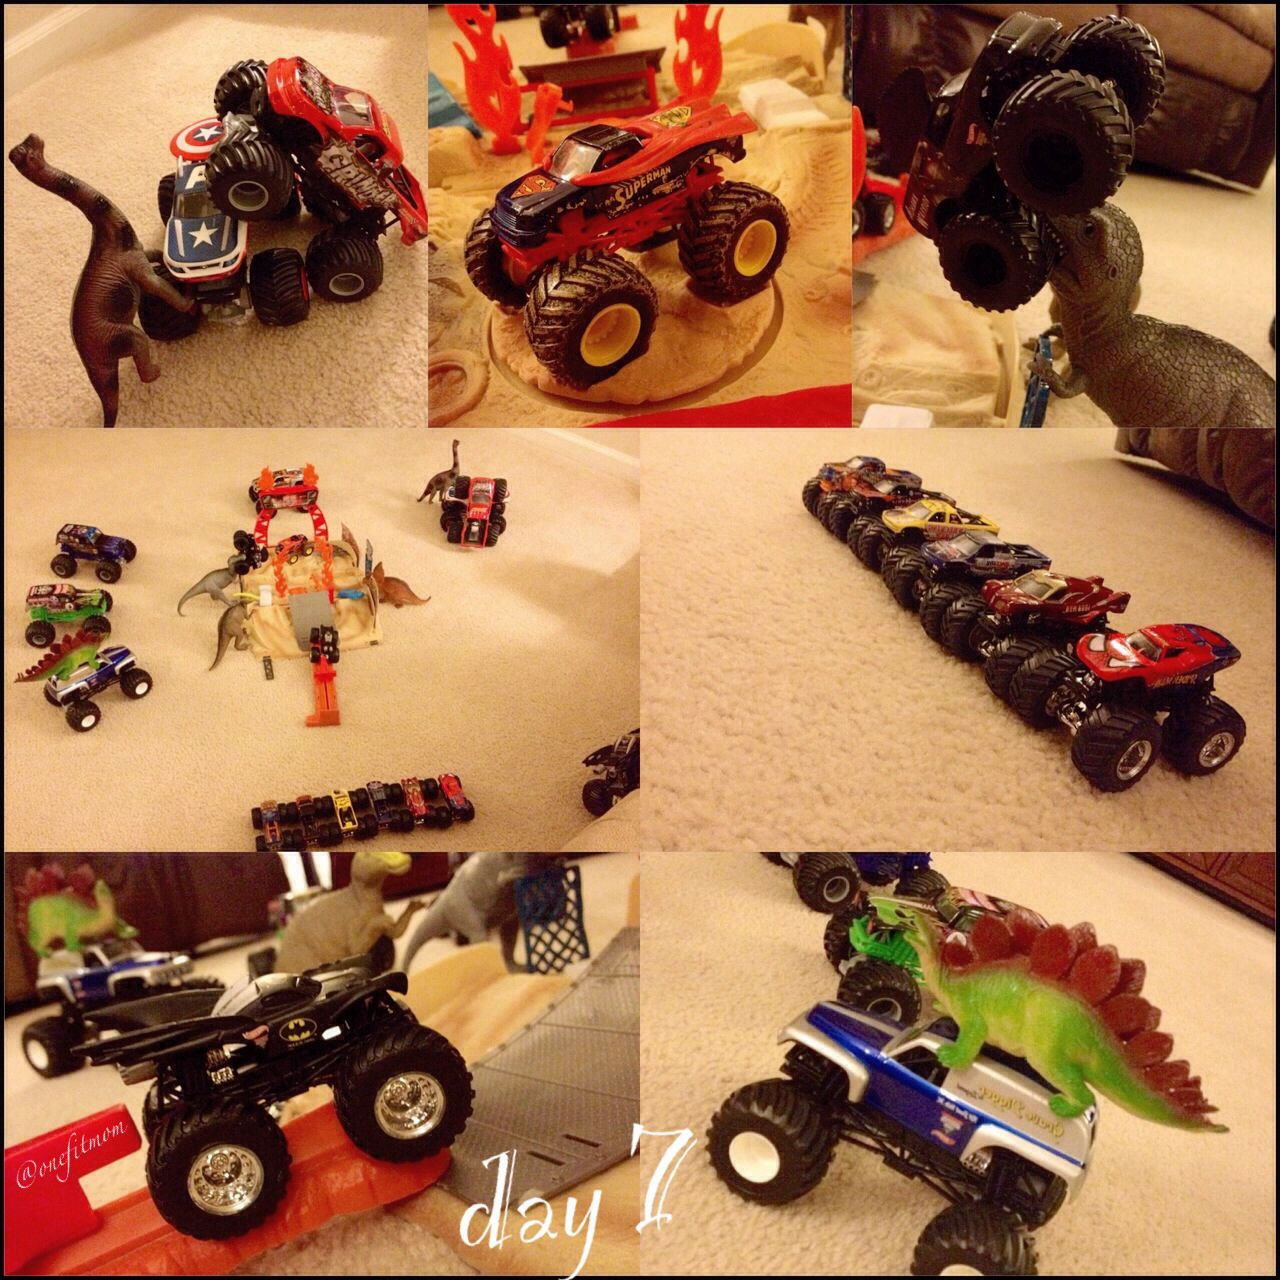 Day 7 ~ this is our version of #elfontheshelf. My son loved it! #christmas #onefitmom #holidays #dinosaurs #traditions #creative #toys